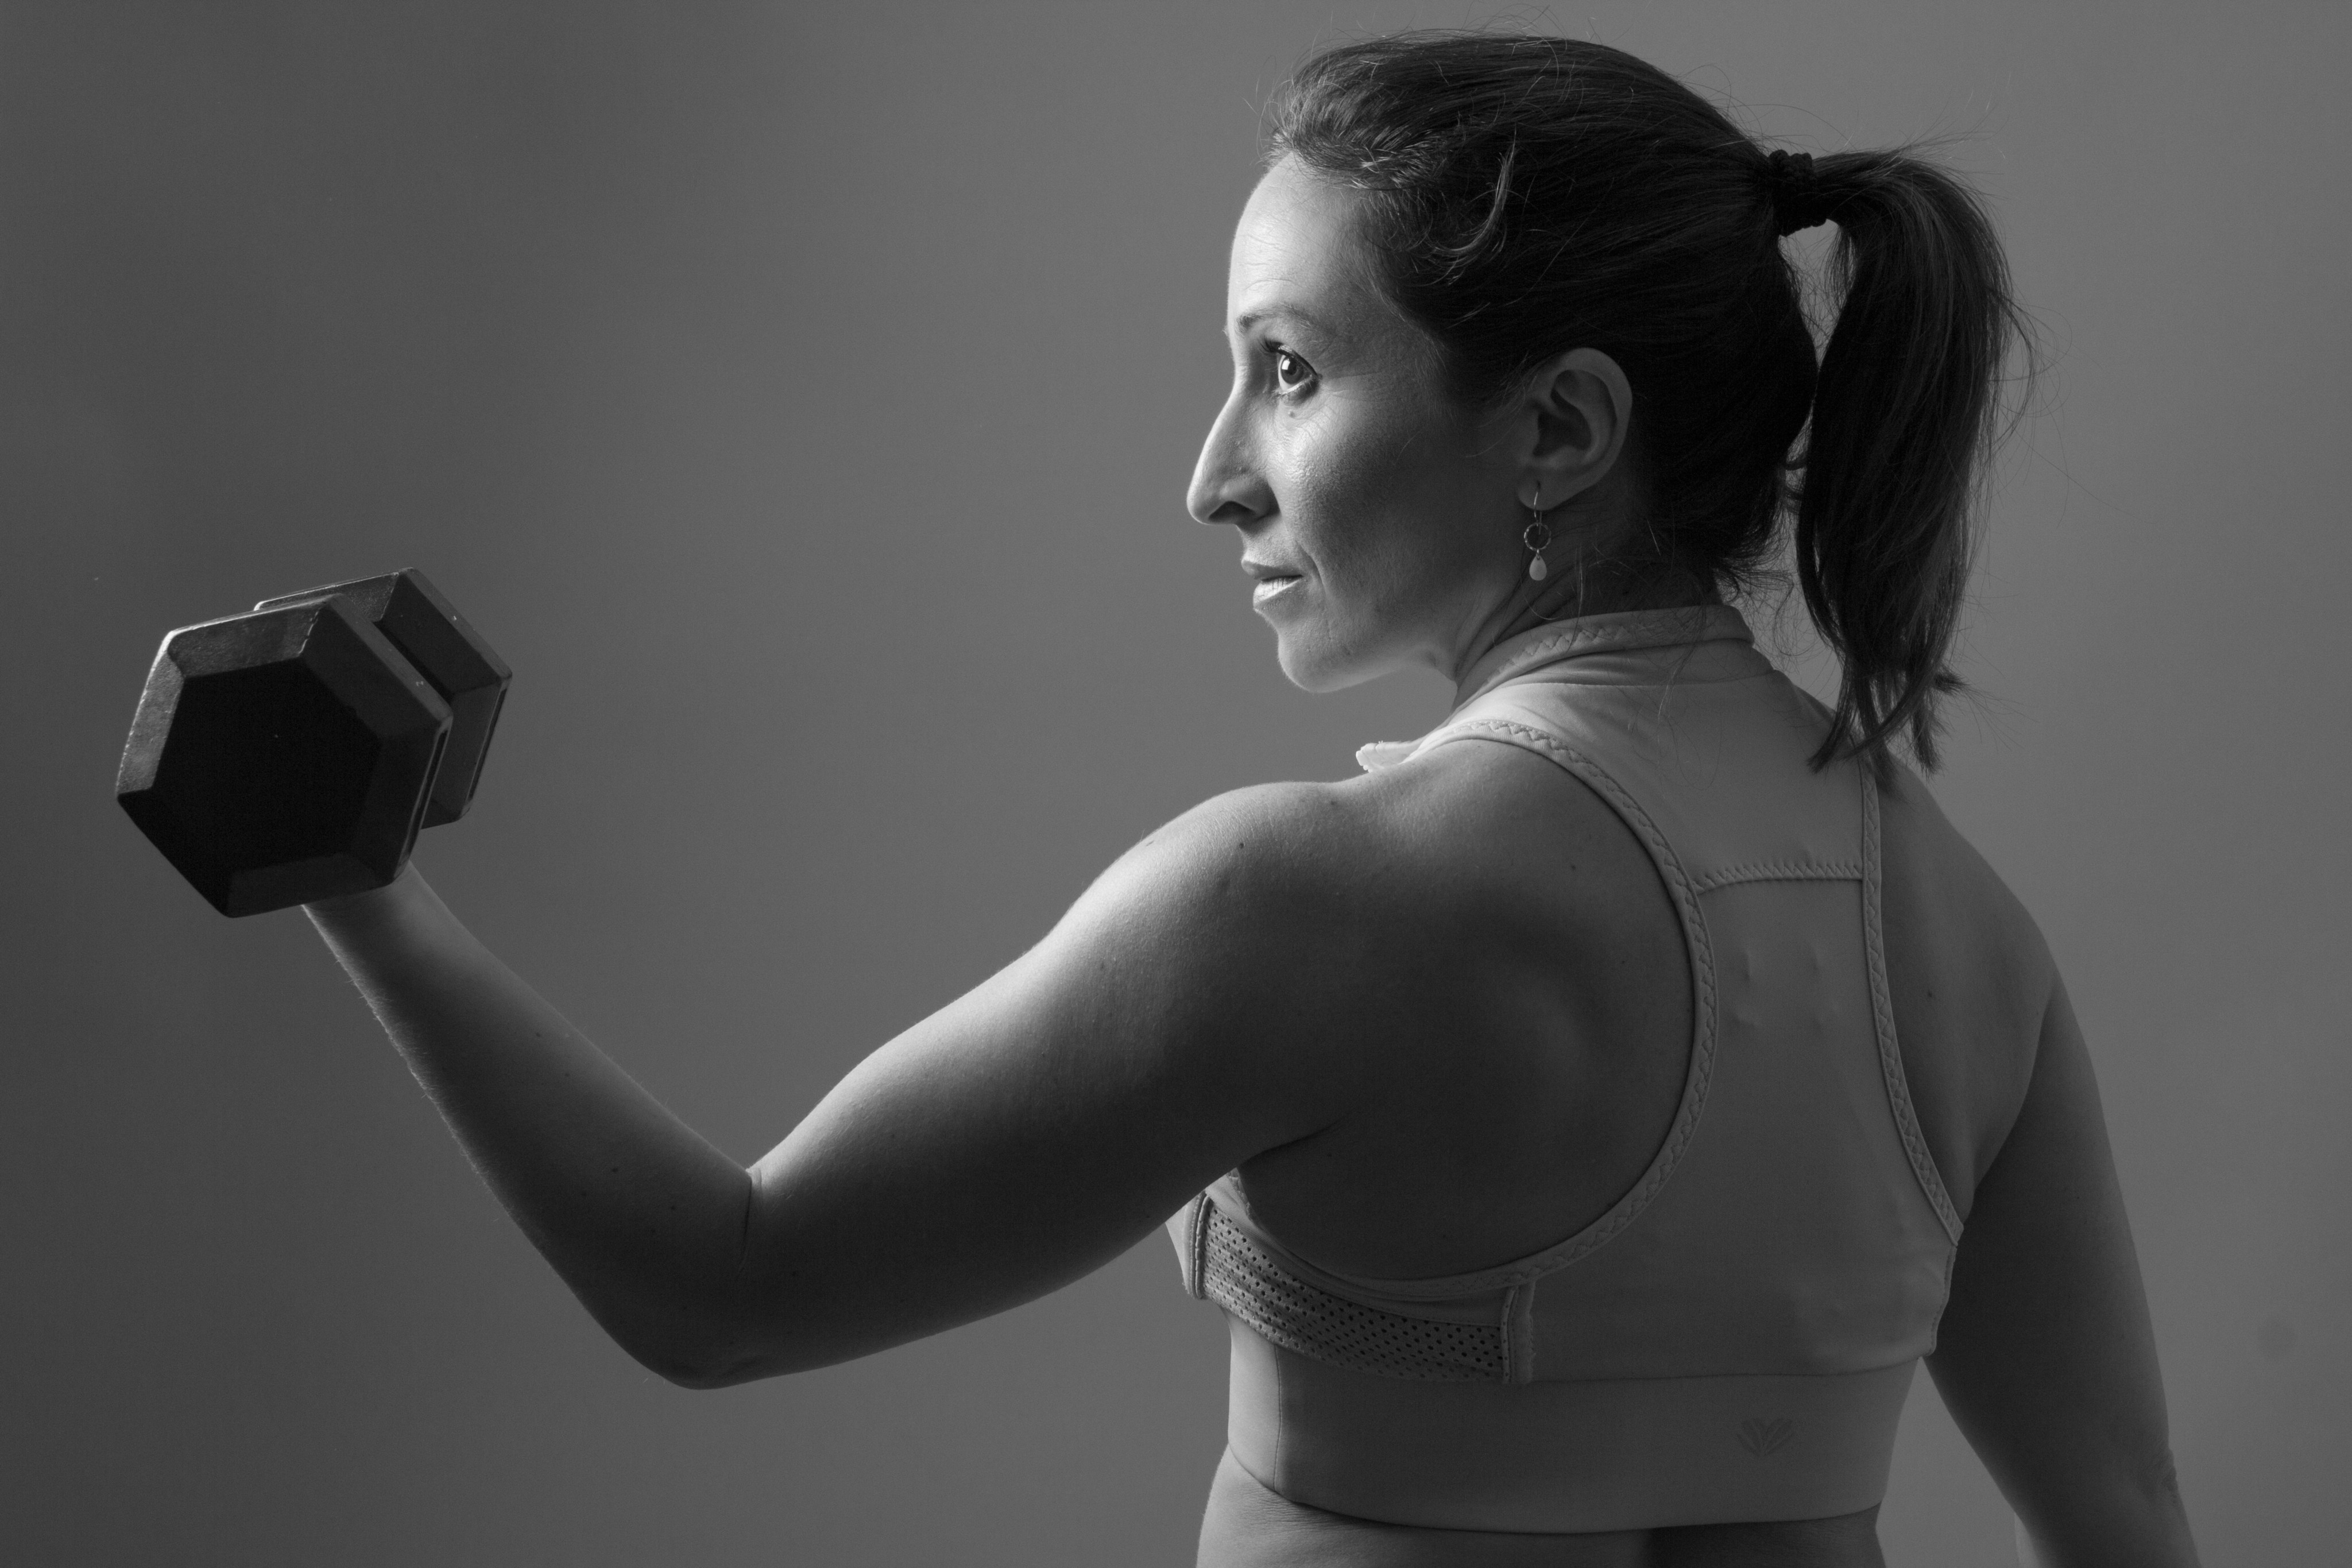 A black and white image of a woman curling a dumbbell.